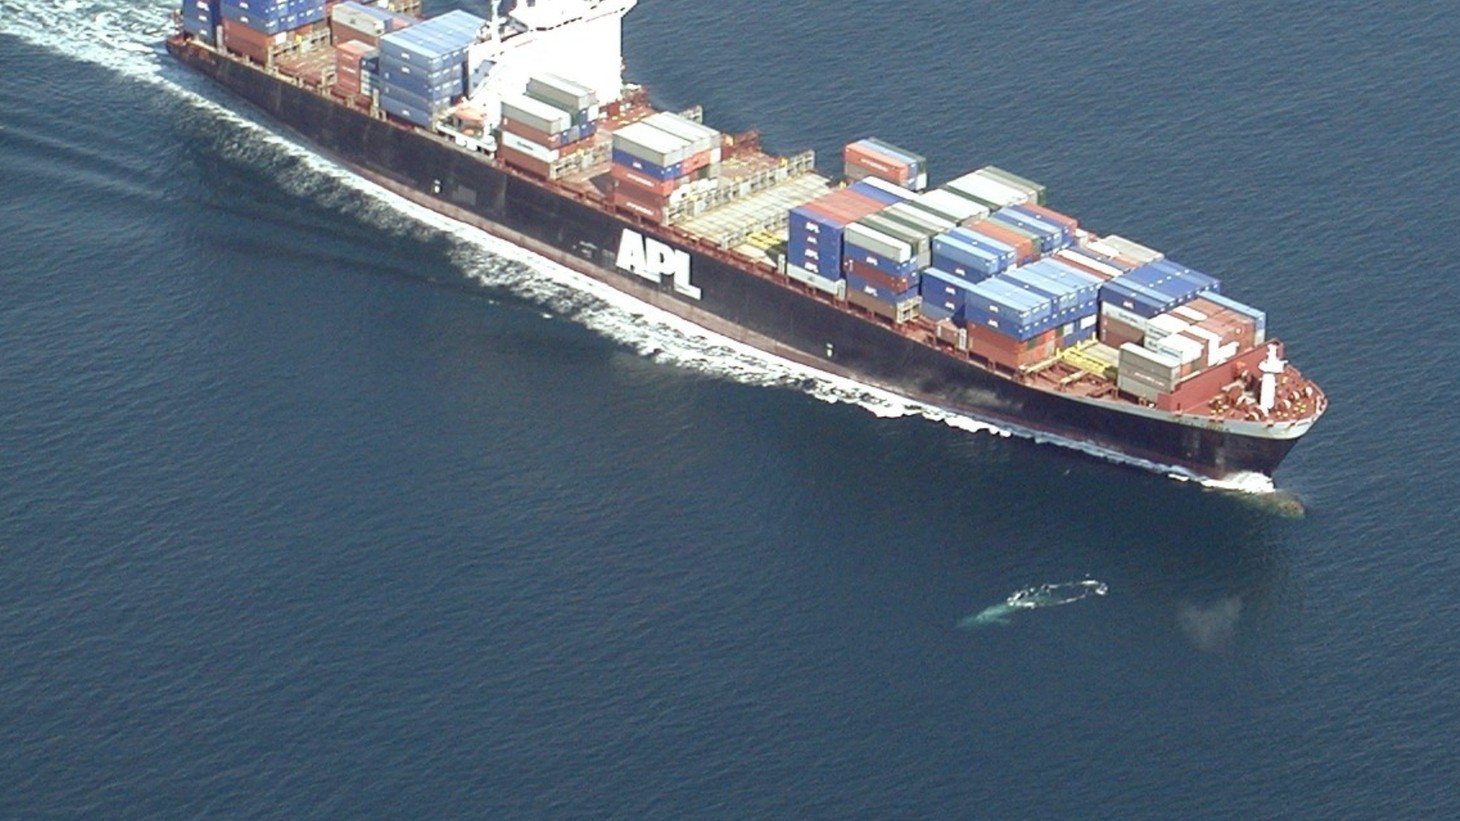 Being struck by a cargo ship is now a top threat for whales migrating along the West Coast of the United States.